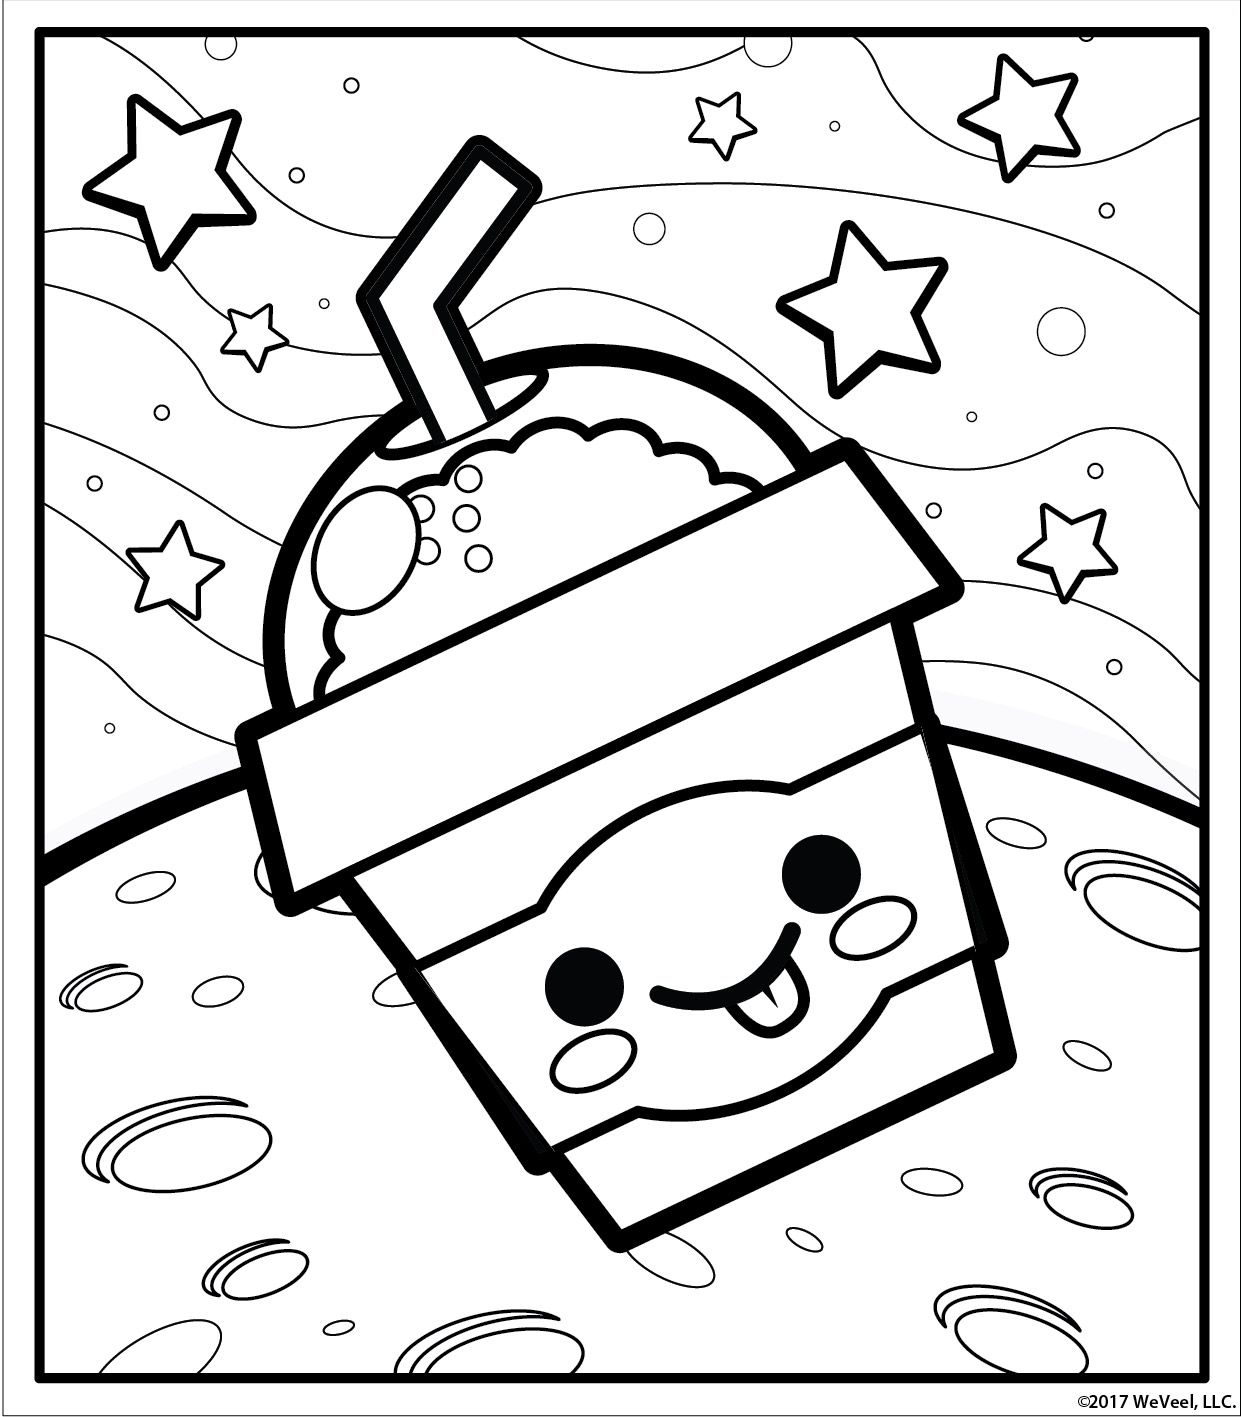 Coloring Pages For Girls Scentos Unicorn Coloring Pages Monster Coloring Pages Coloring Pages For Girls